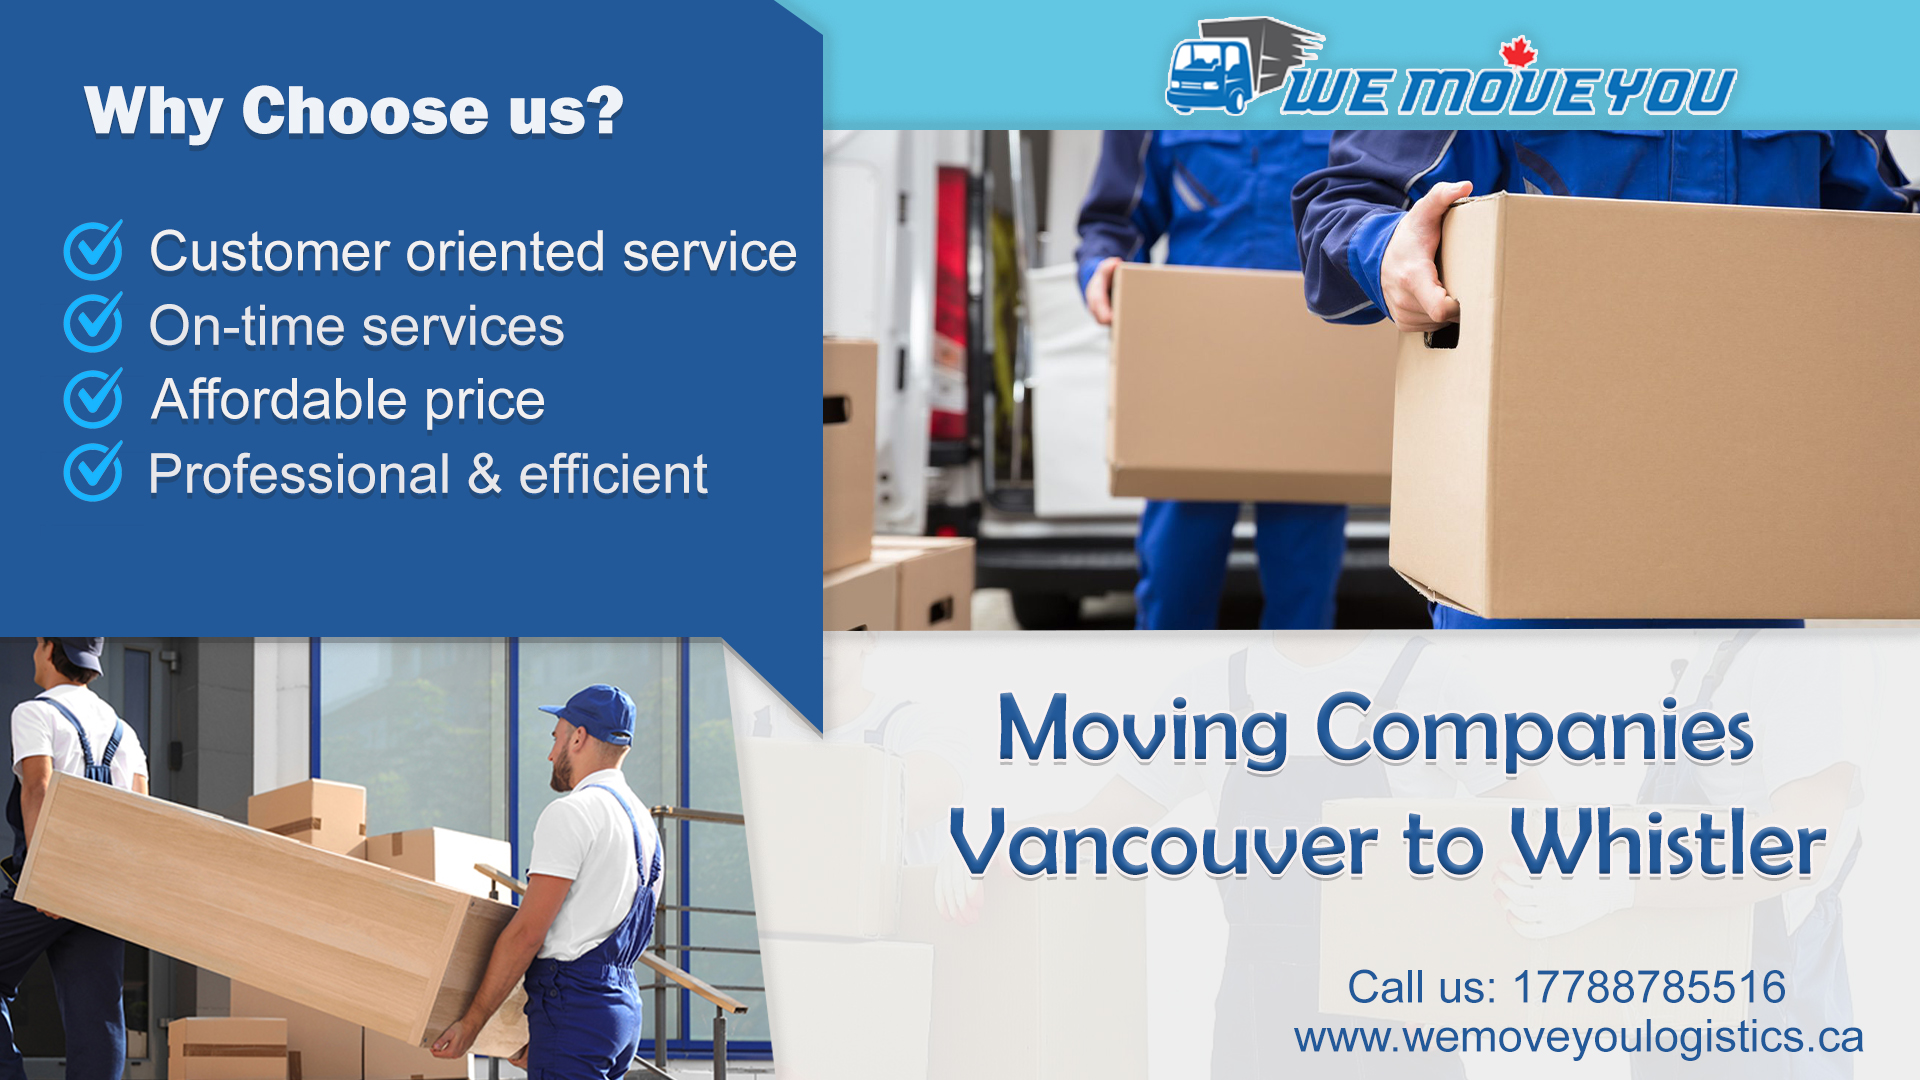 Moving Companies Vancouver to Whistler